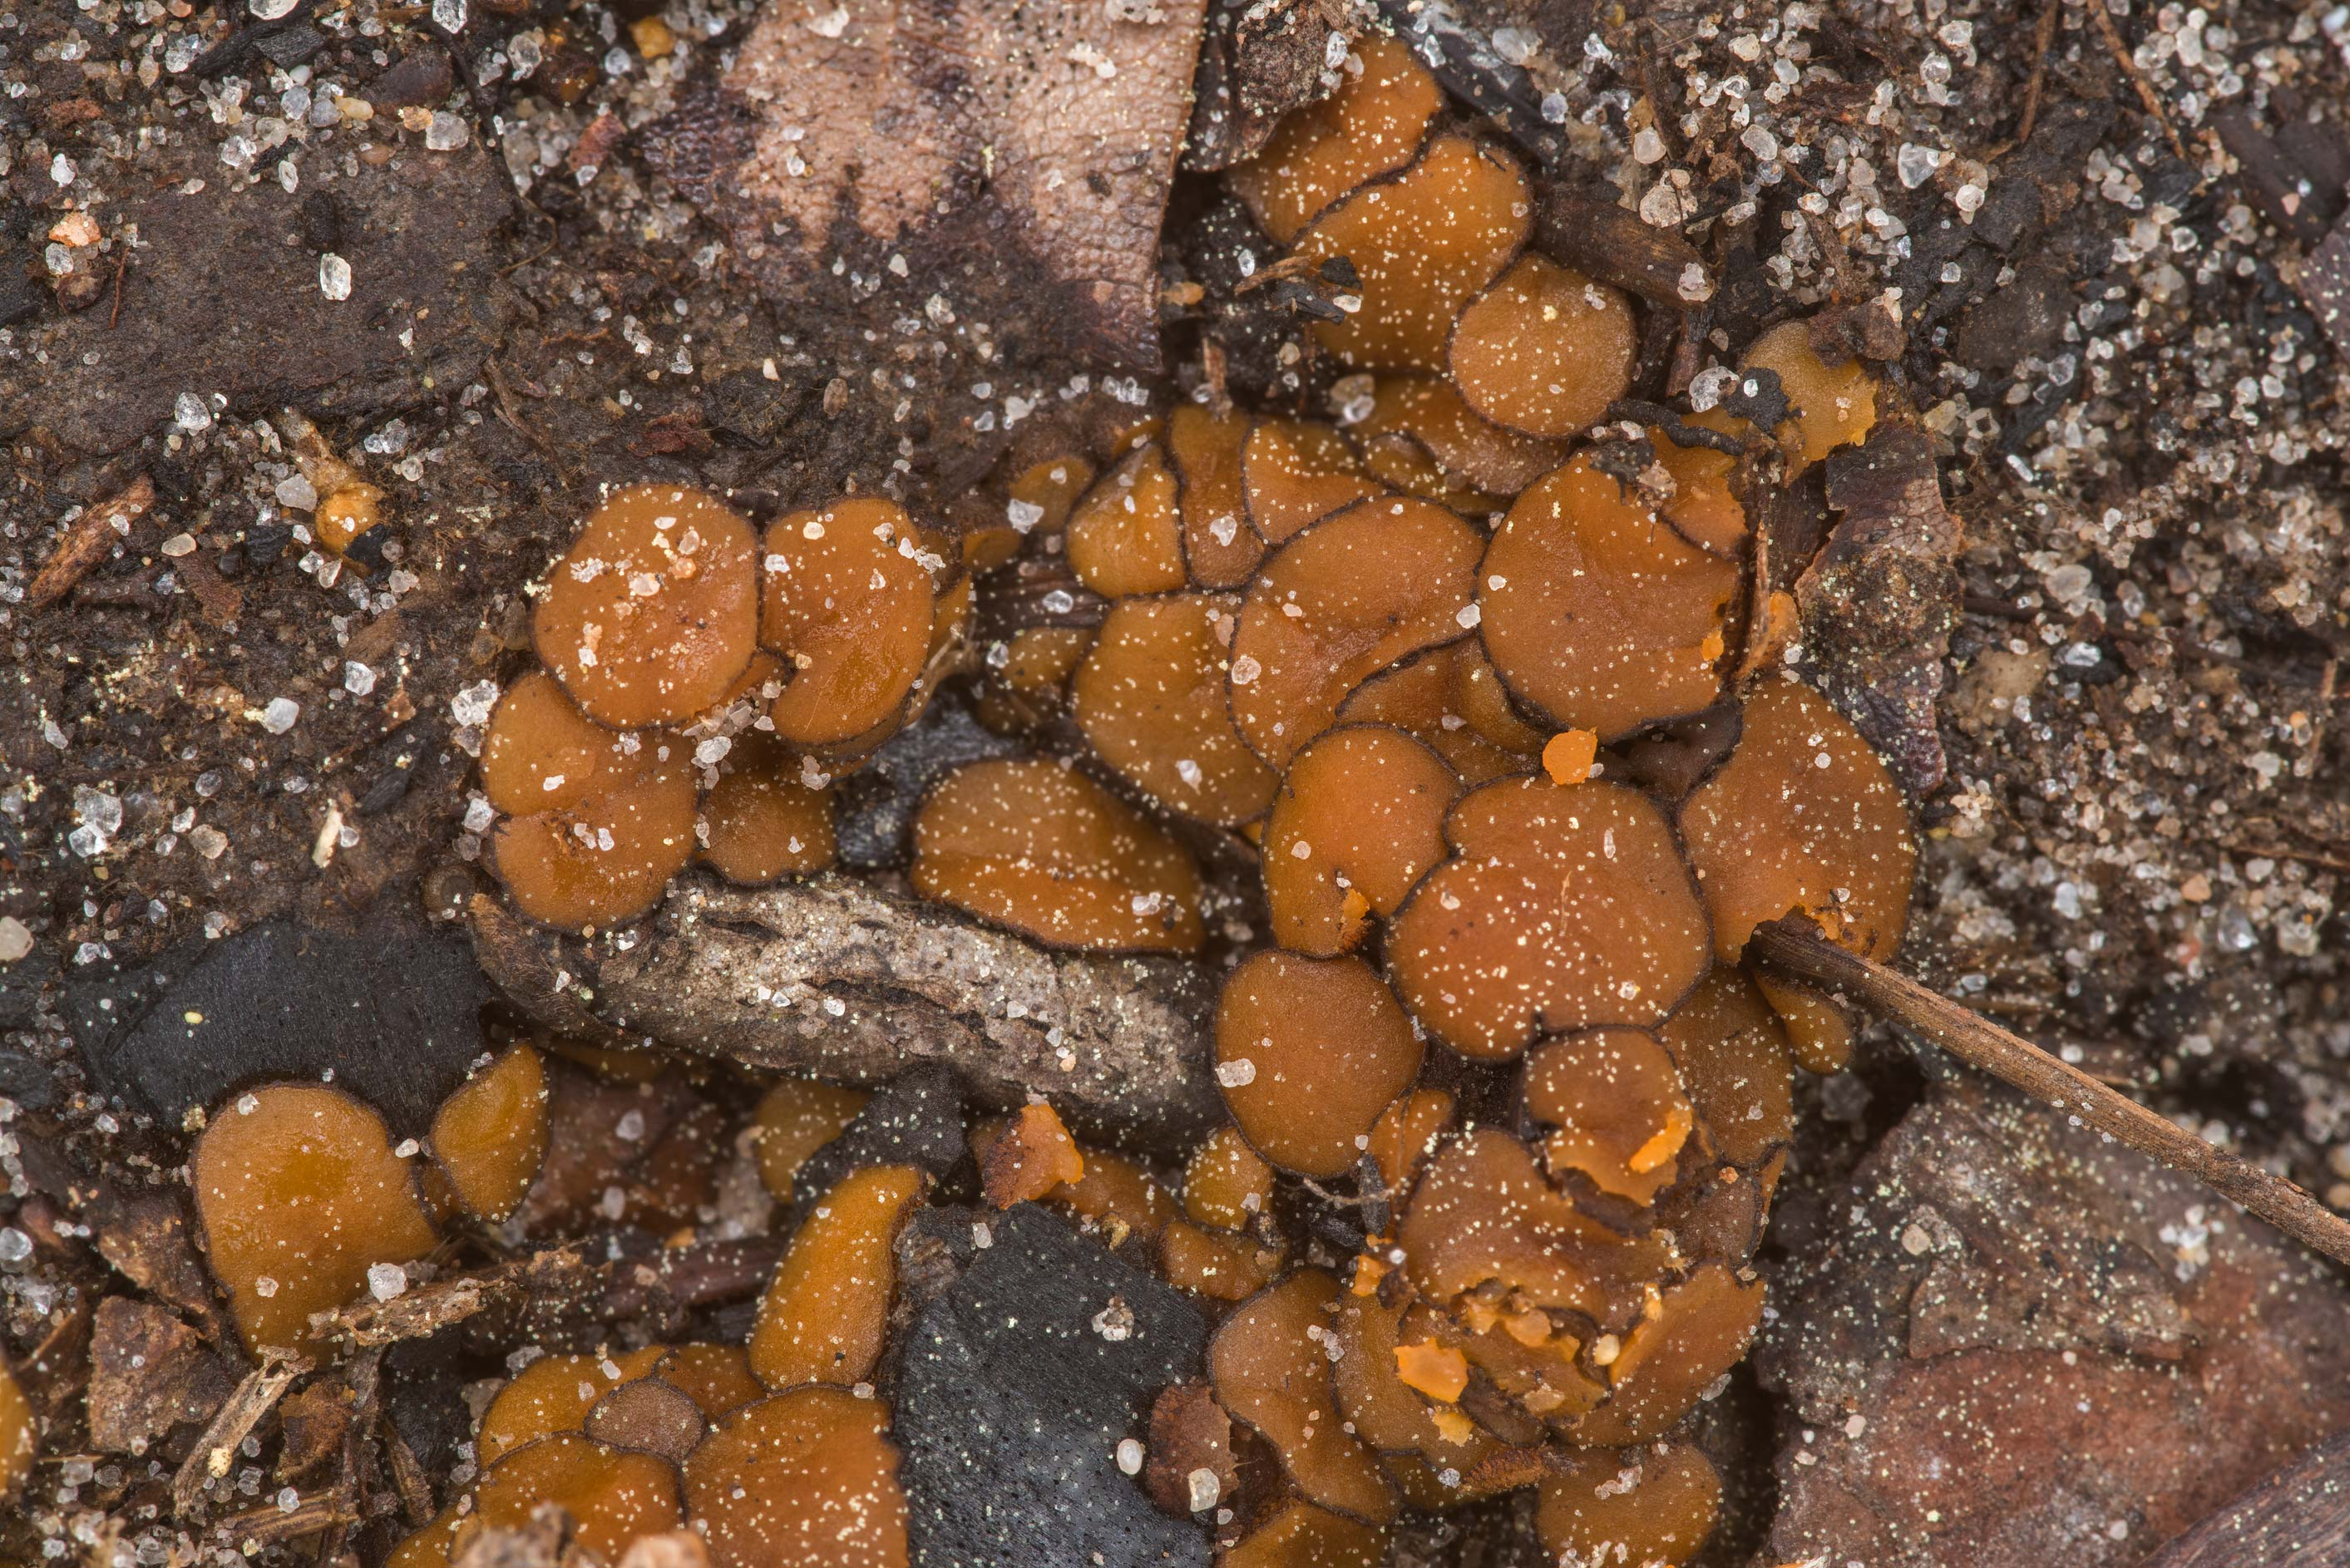 Close-up of ascomycete fungus Anthracobia...National Forest. Shepherd, Texas